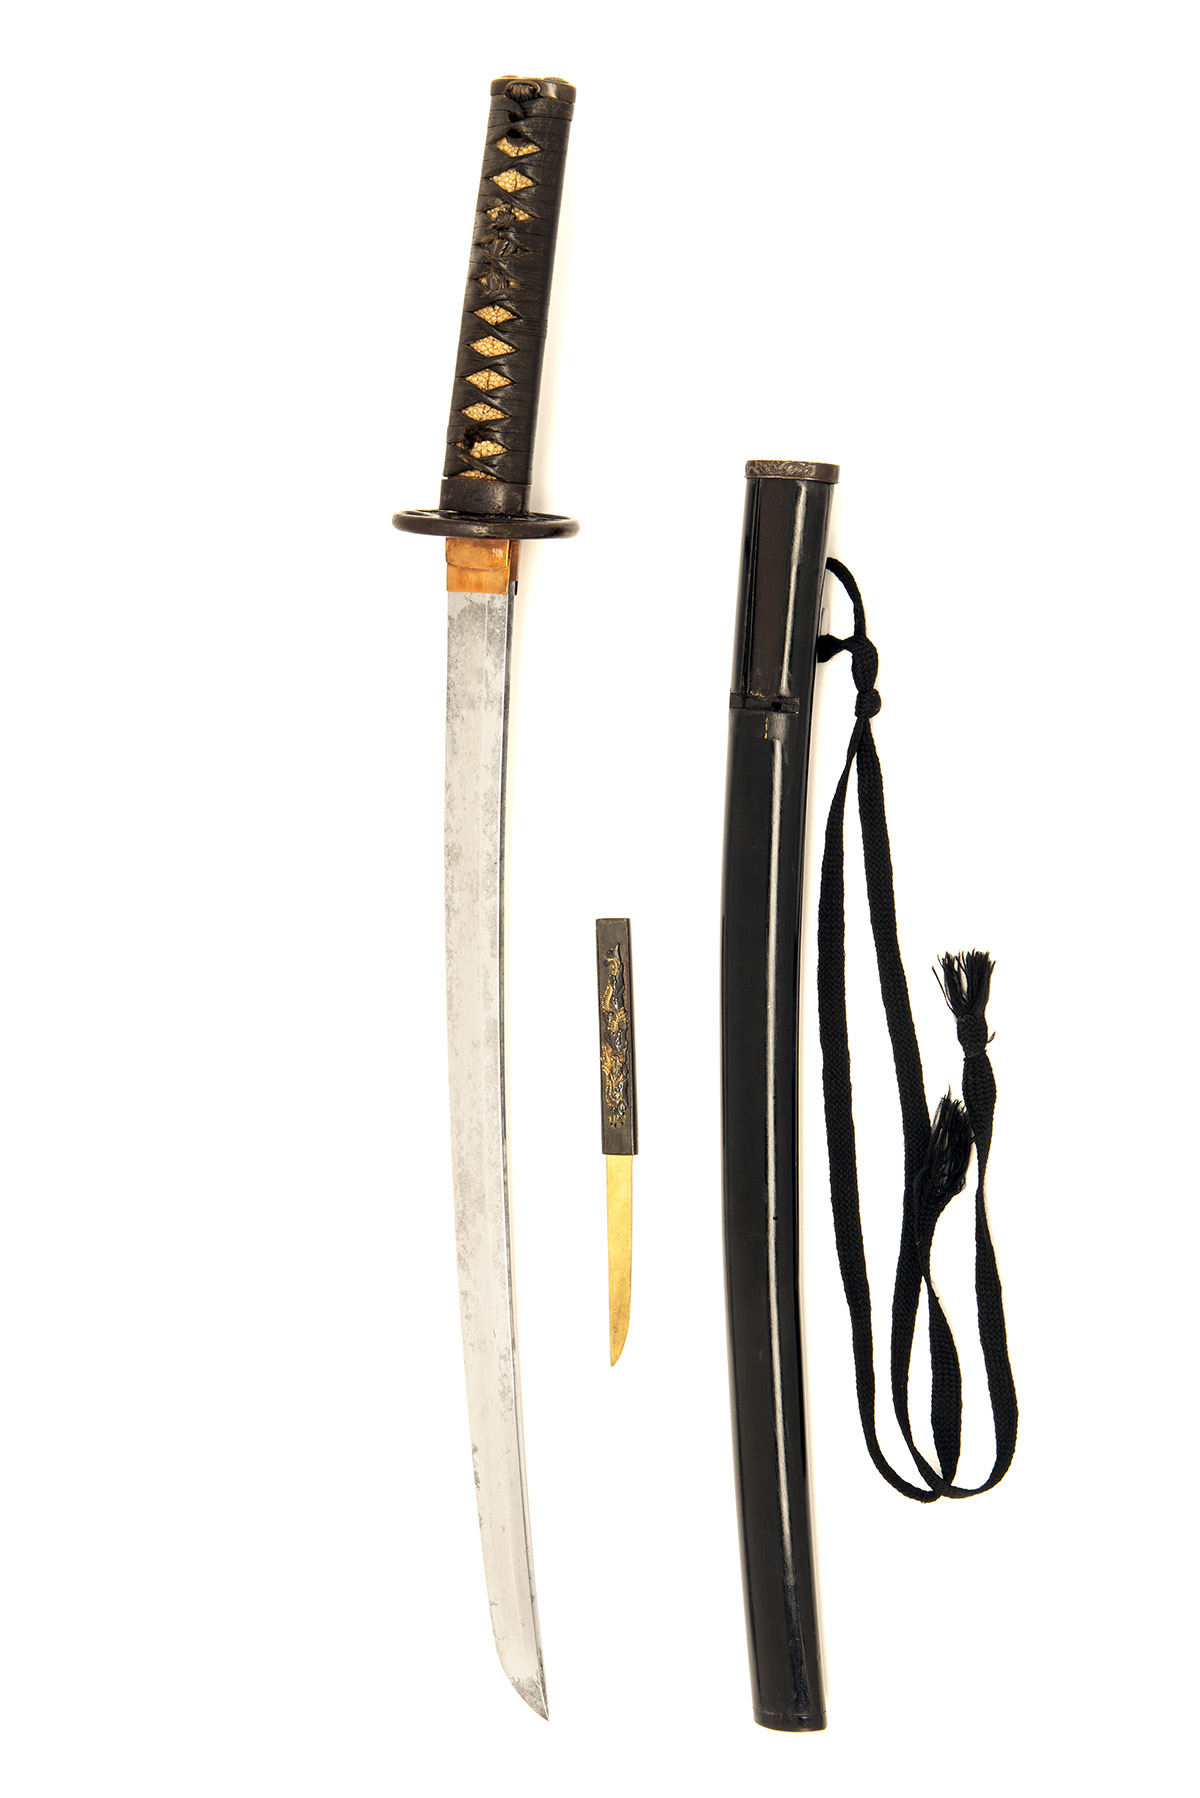 Lot 208 - A JAPANESE WAKIZASHI, probably early 18th century, with 18 1/4in. curved and re-polished blade (some